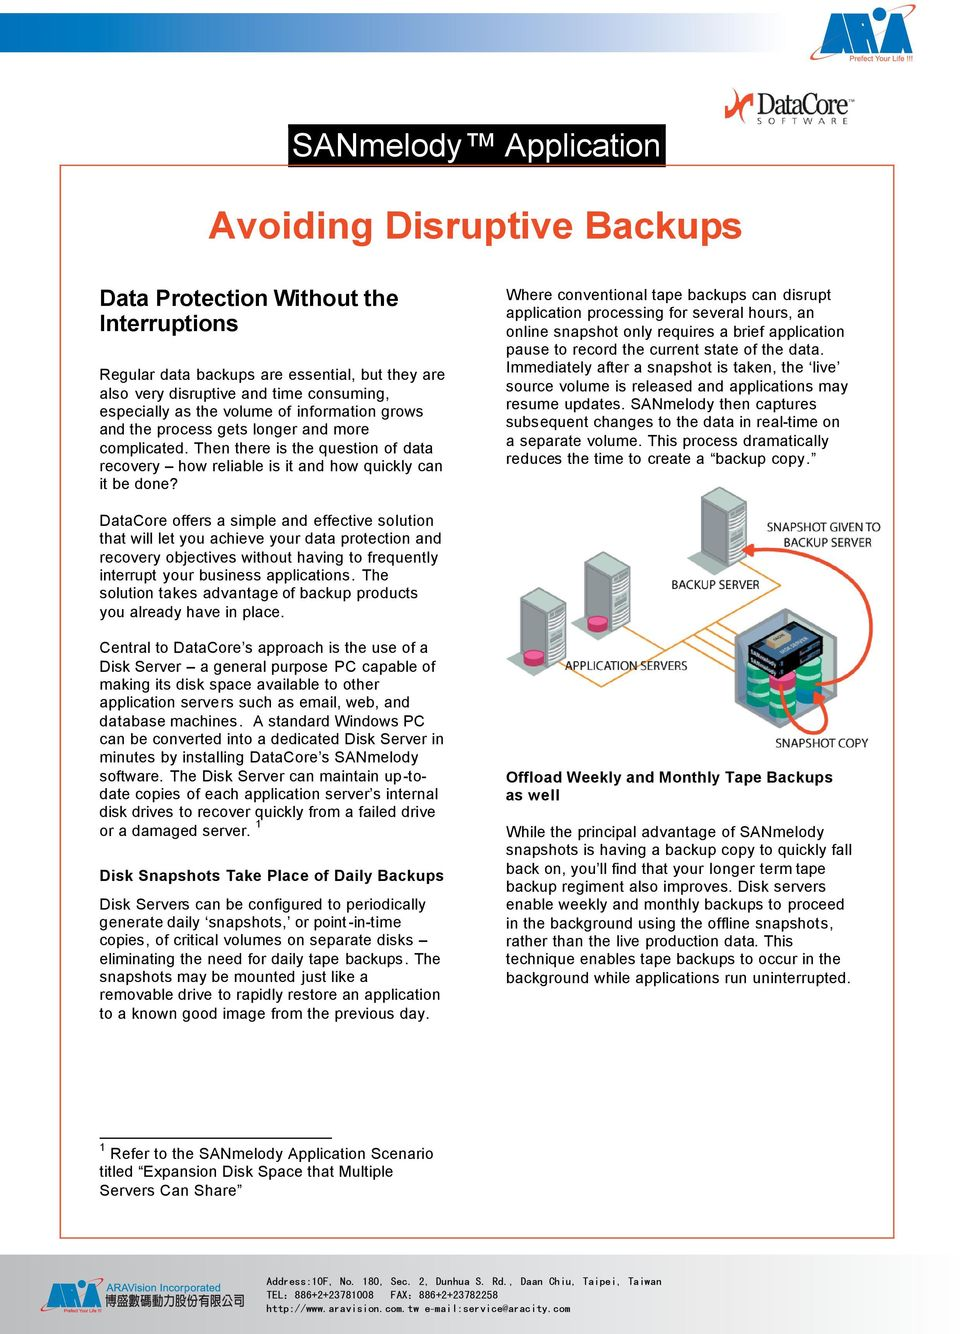 Where conventional tape backups can disrupt application processing for several hours, an online snapshot only requires a brief application pause to record the current state of the data.